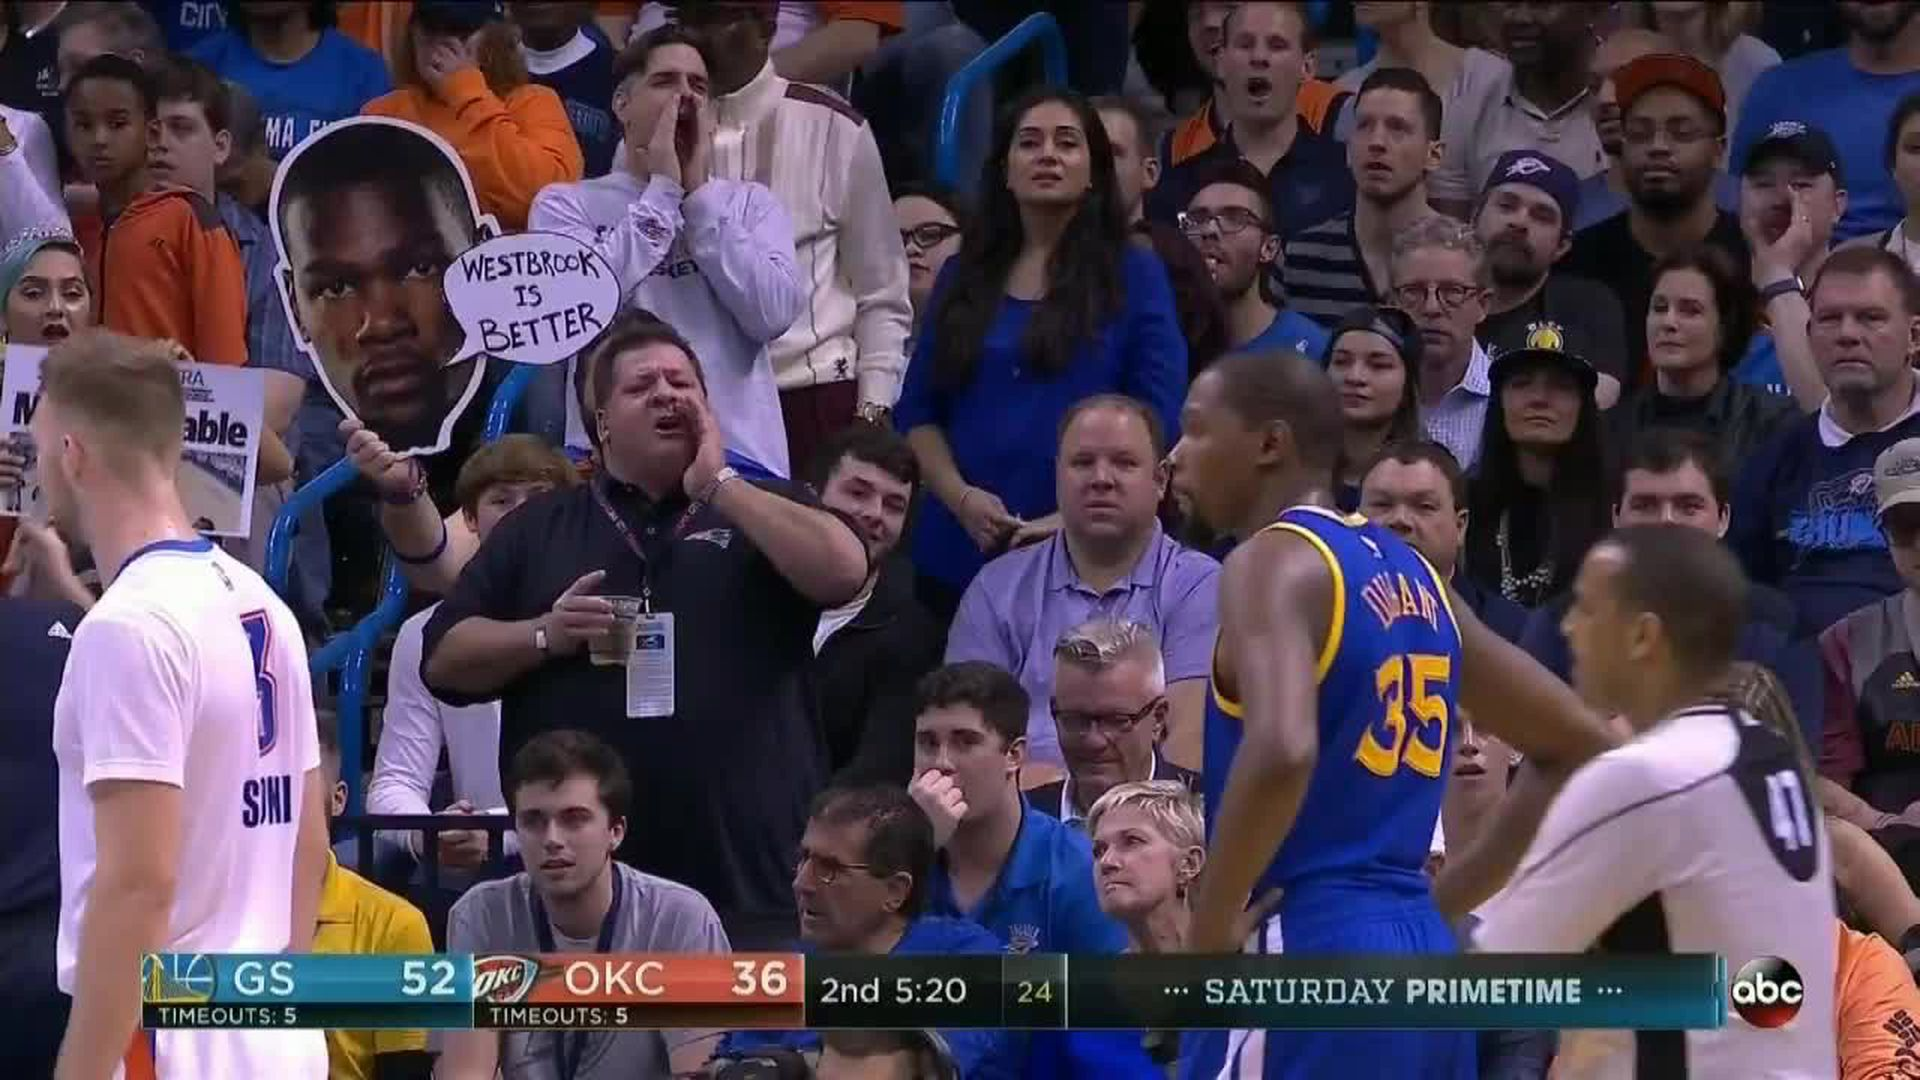 Thunder fans are chanting 'Cupcake' at Kevin Durant. Here's why.